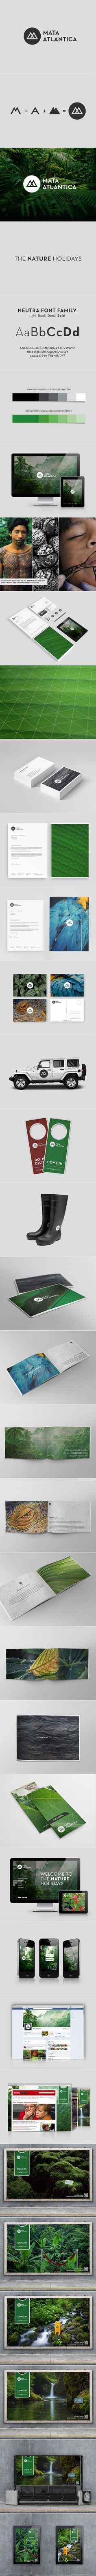 Did you see those vibrant business cards? We love Mata Atlântica's entire branding look! #branding #logo もっと見る